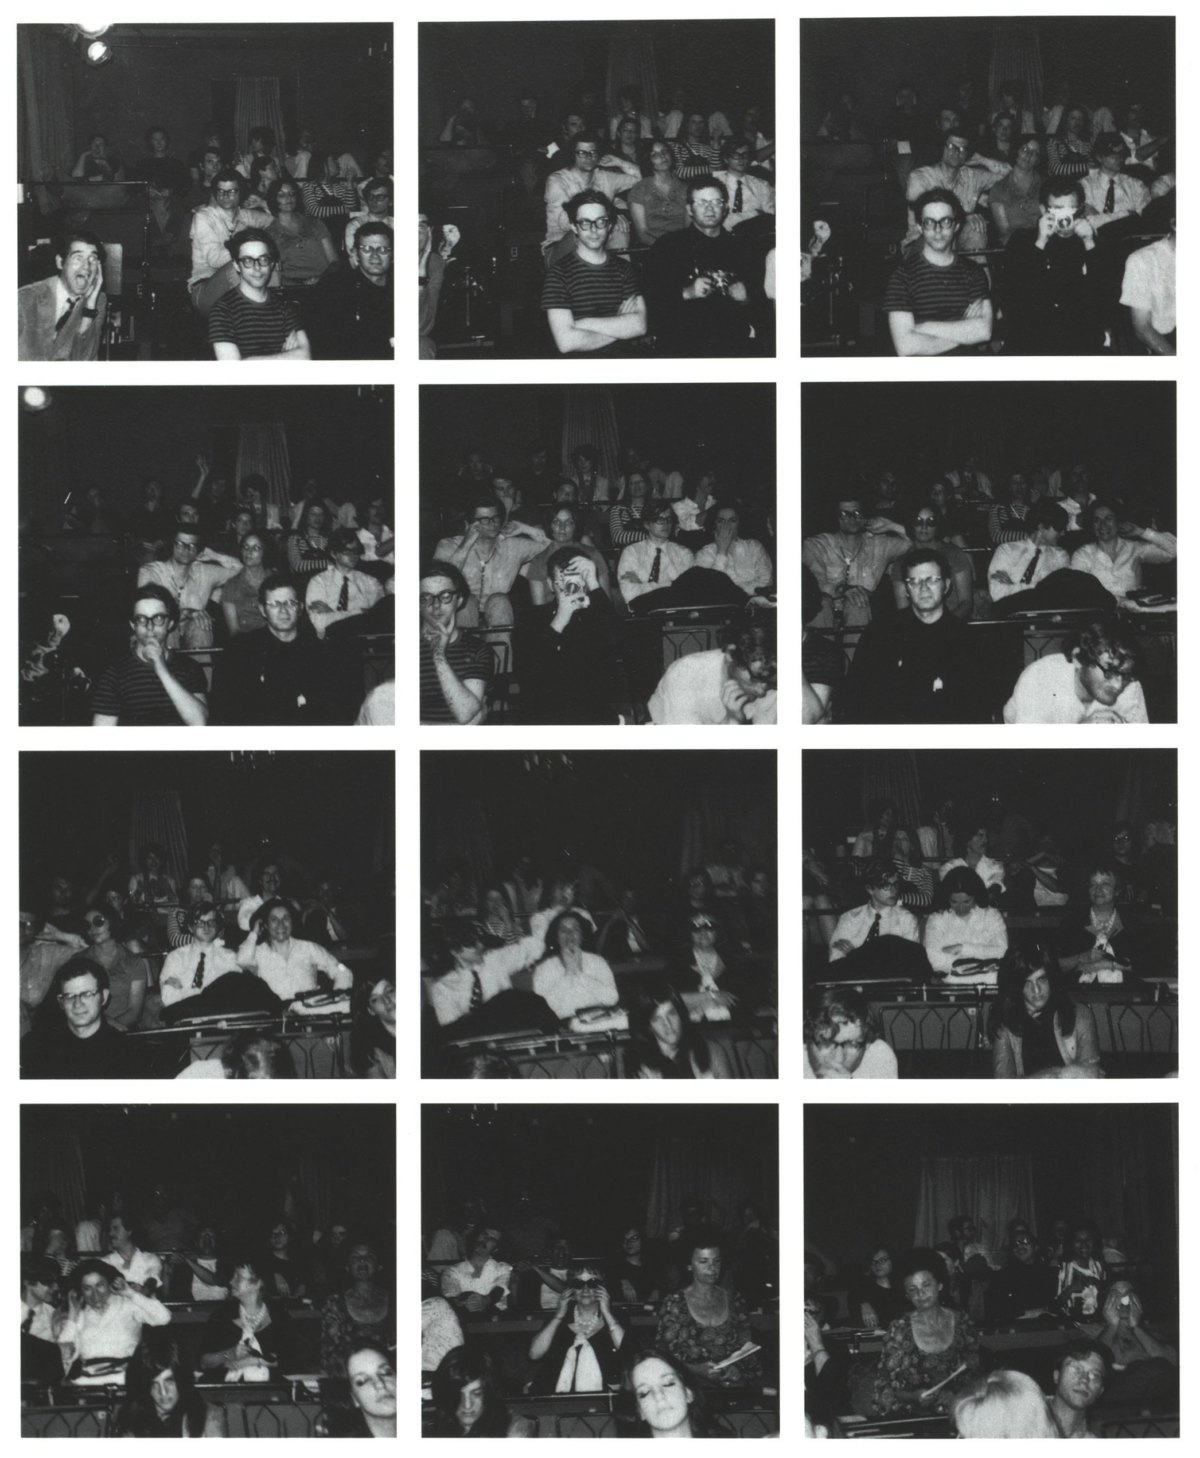 Abb. 1 Vito Acconci: Twelve Pictures, 1969, The Theatre, New York City. Bildfolge nach dem Abdruck in Avalanche 6 (1972), S. 44. © Vito Acconci.